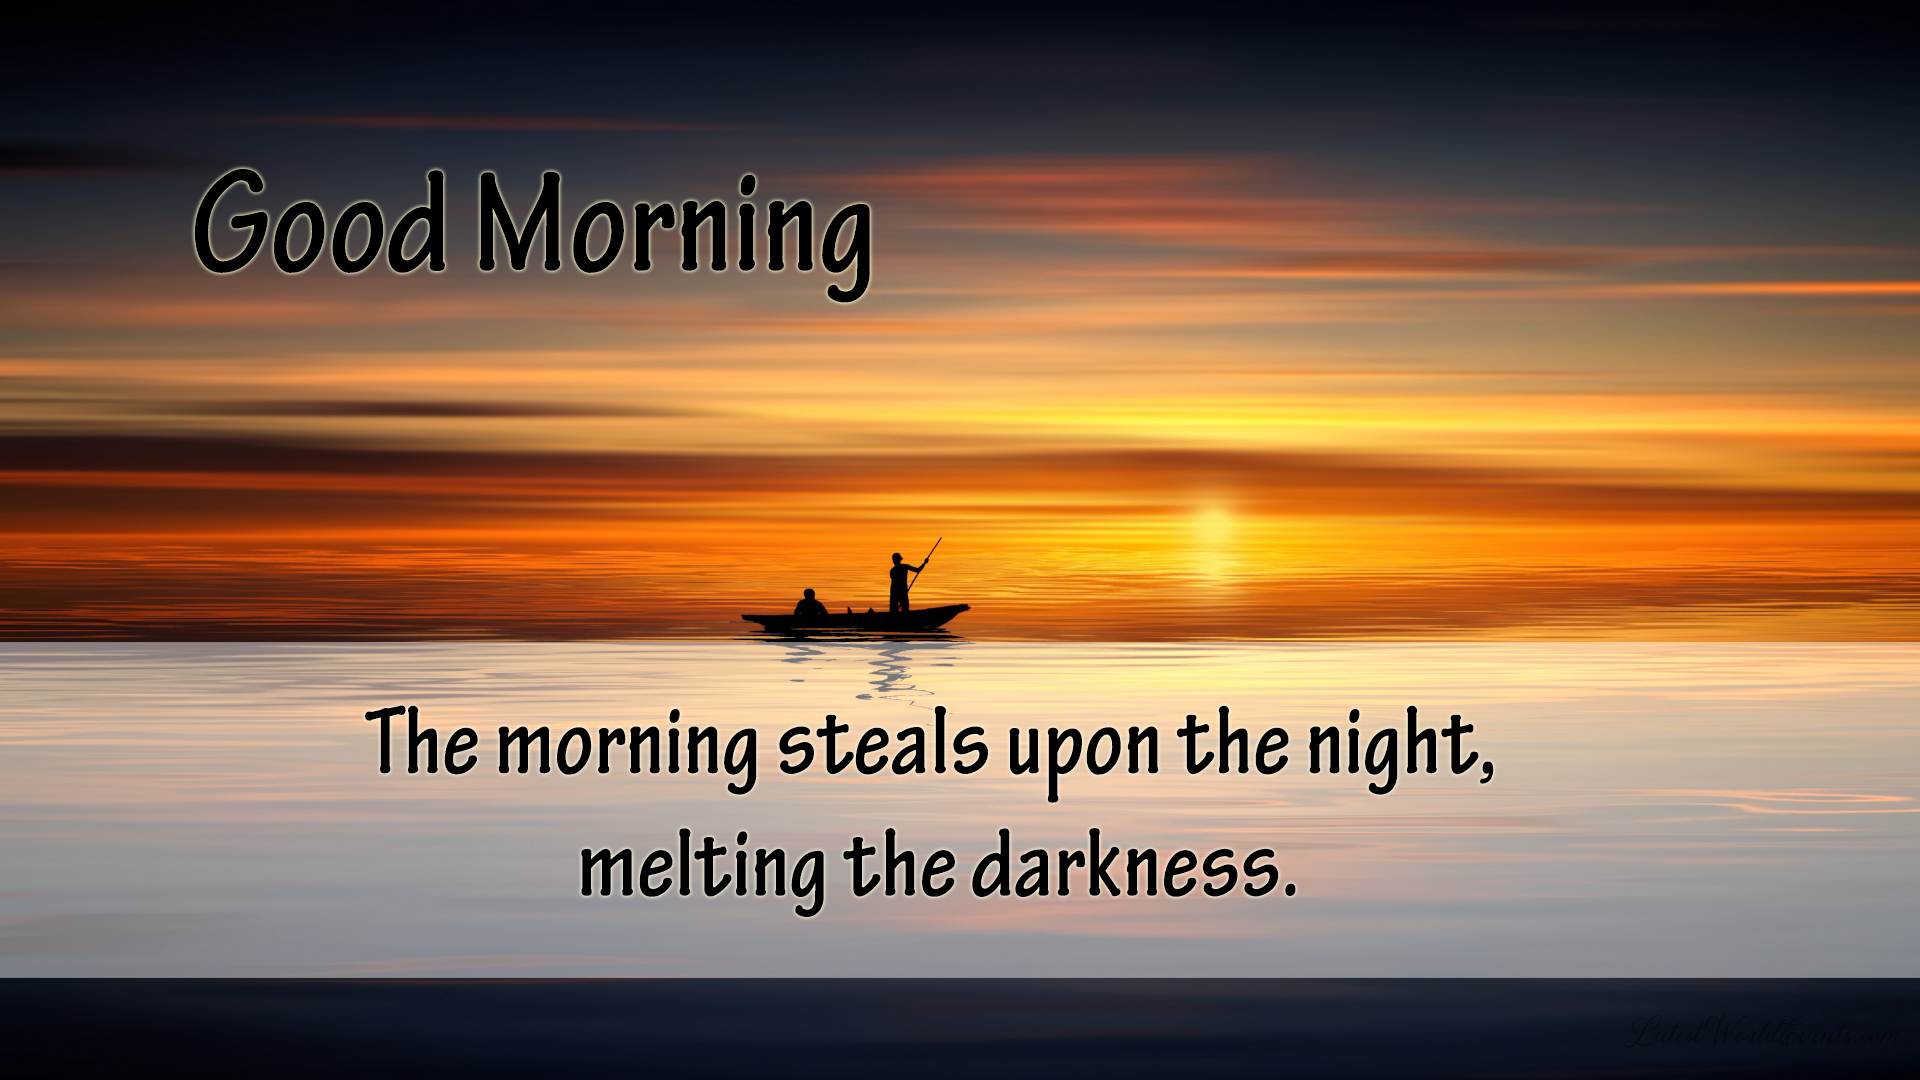 Latest-good-morning-images-free-download-for-whatsapp-hd-download